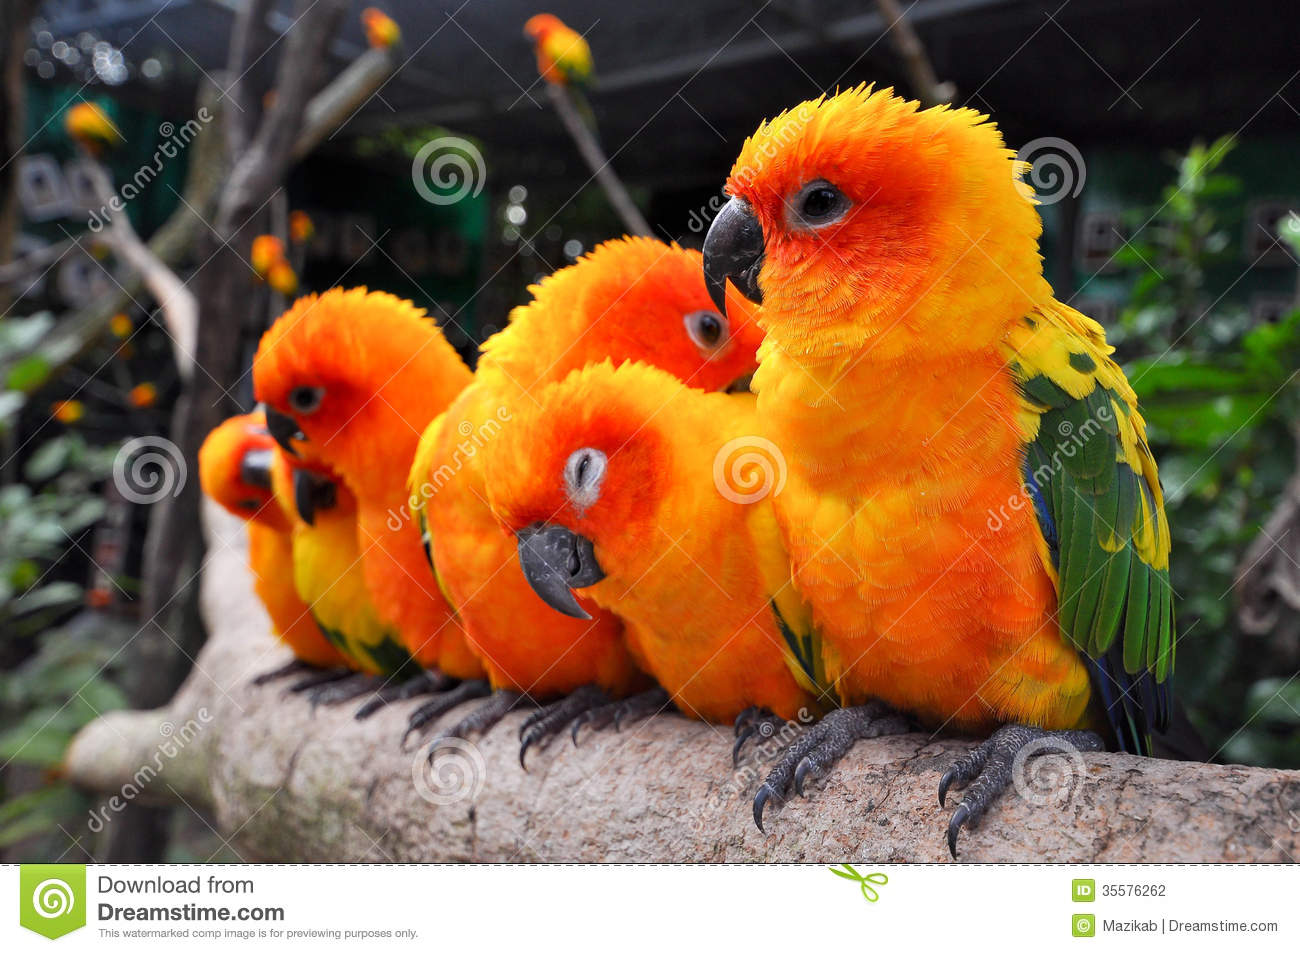 The Sun Parakeet or Sun Conure is a medium-sized brightly colored ...